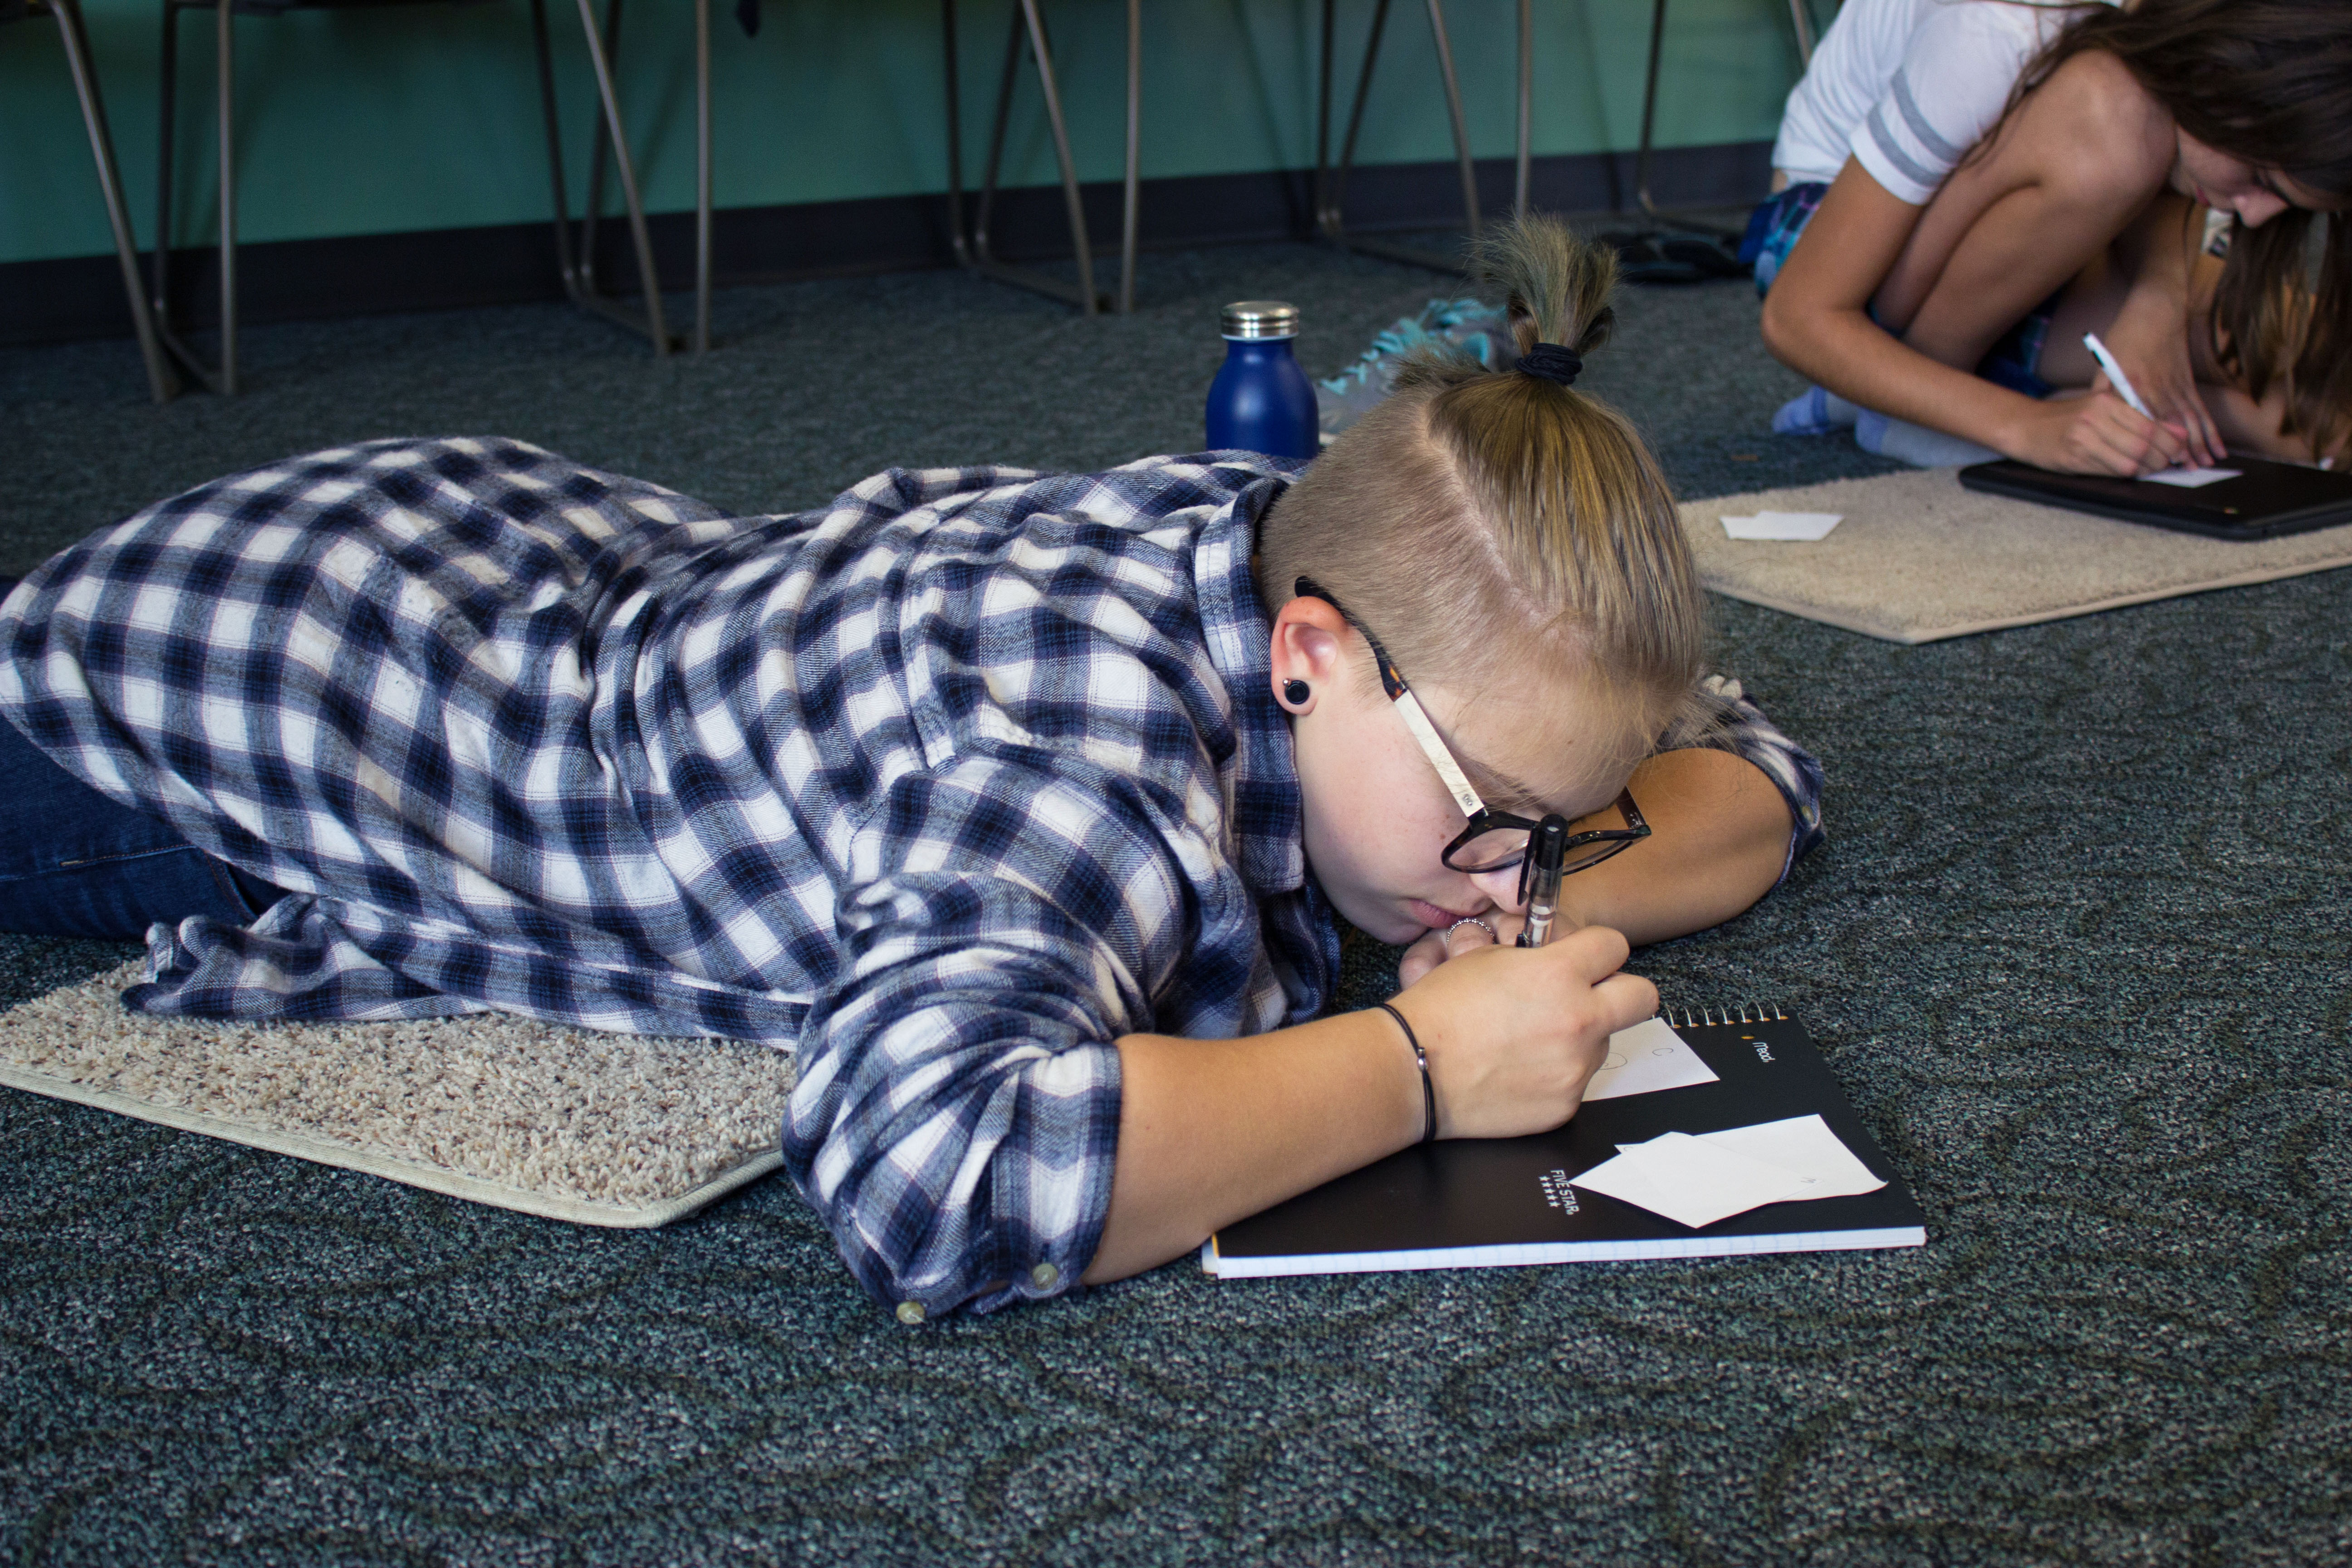 Photo of a teen laying on floor writing in a notebook.